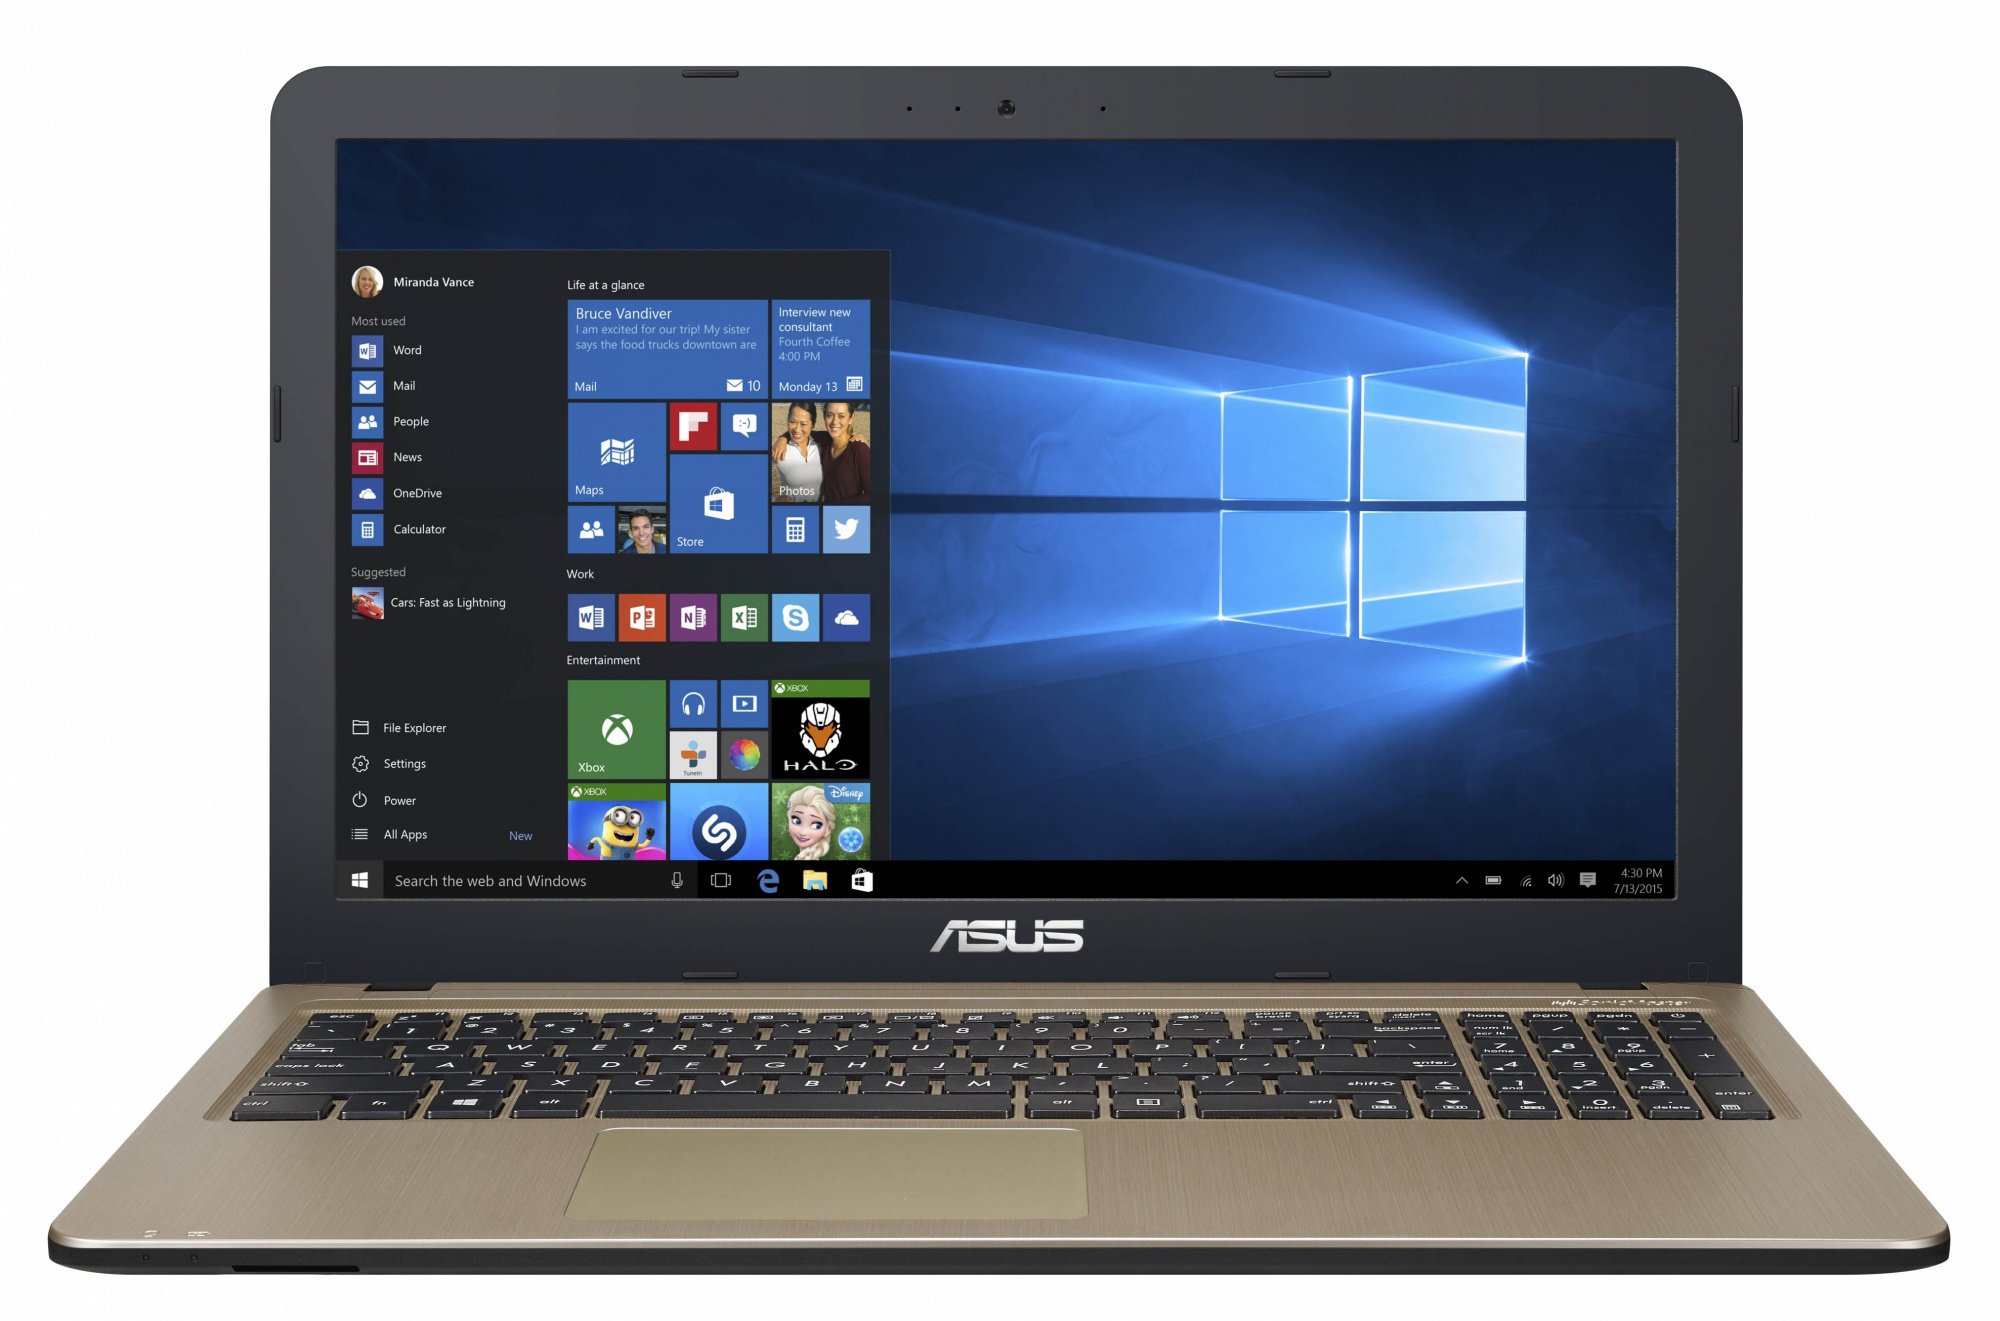 "Ноутбук Asus X540SC 15.6"" Intel Pentium N3700 1.6Ghz, 2Gb, 500Gb HDD, Win10 (90NB0B21-M01290), Black"